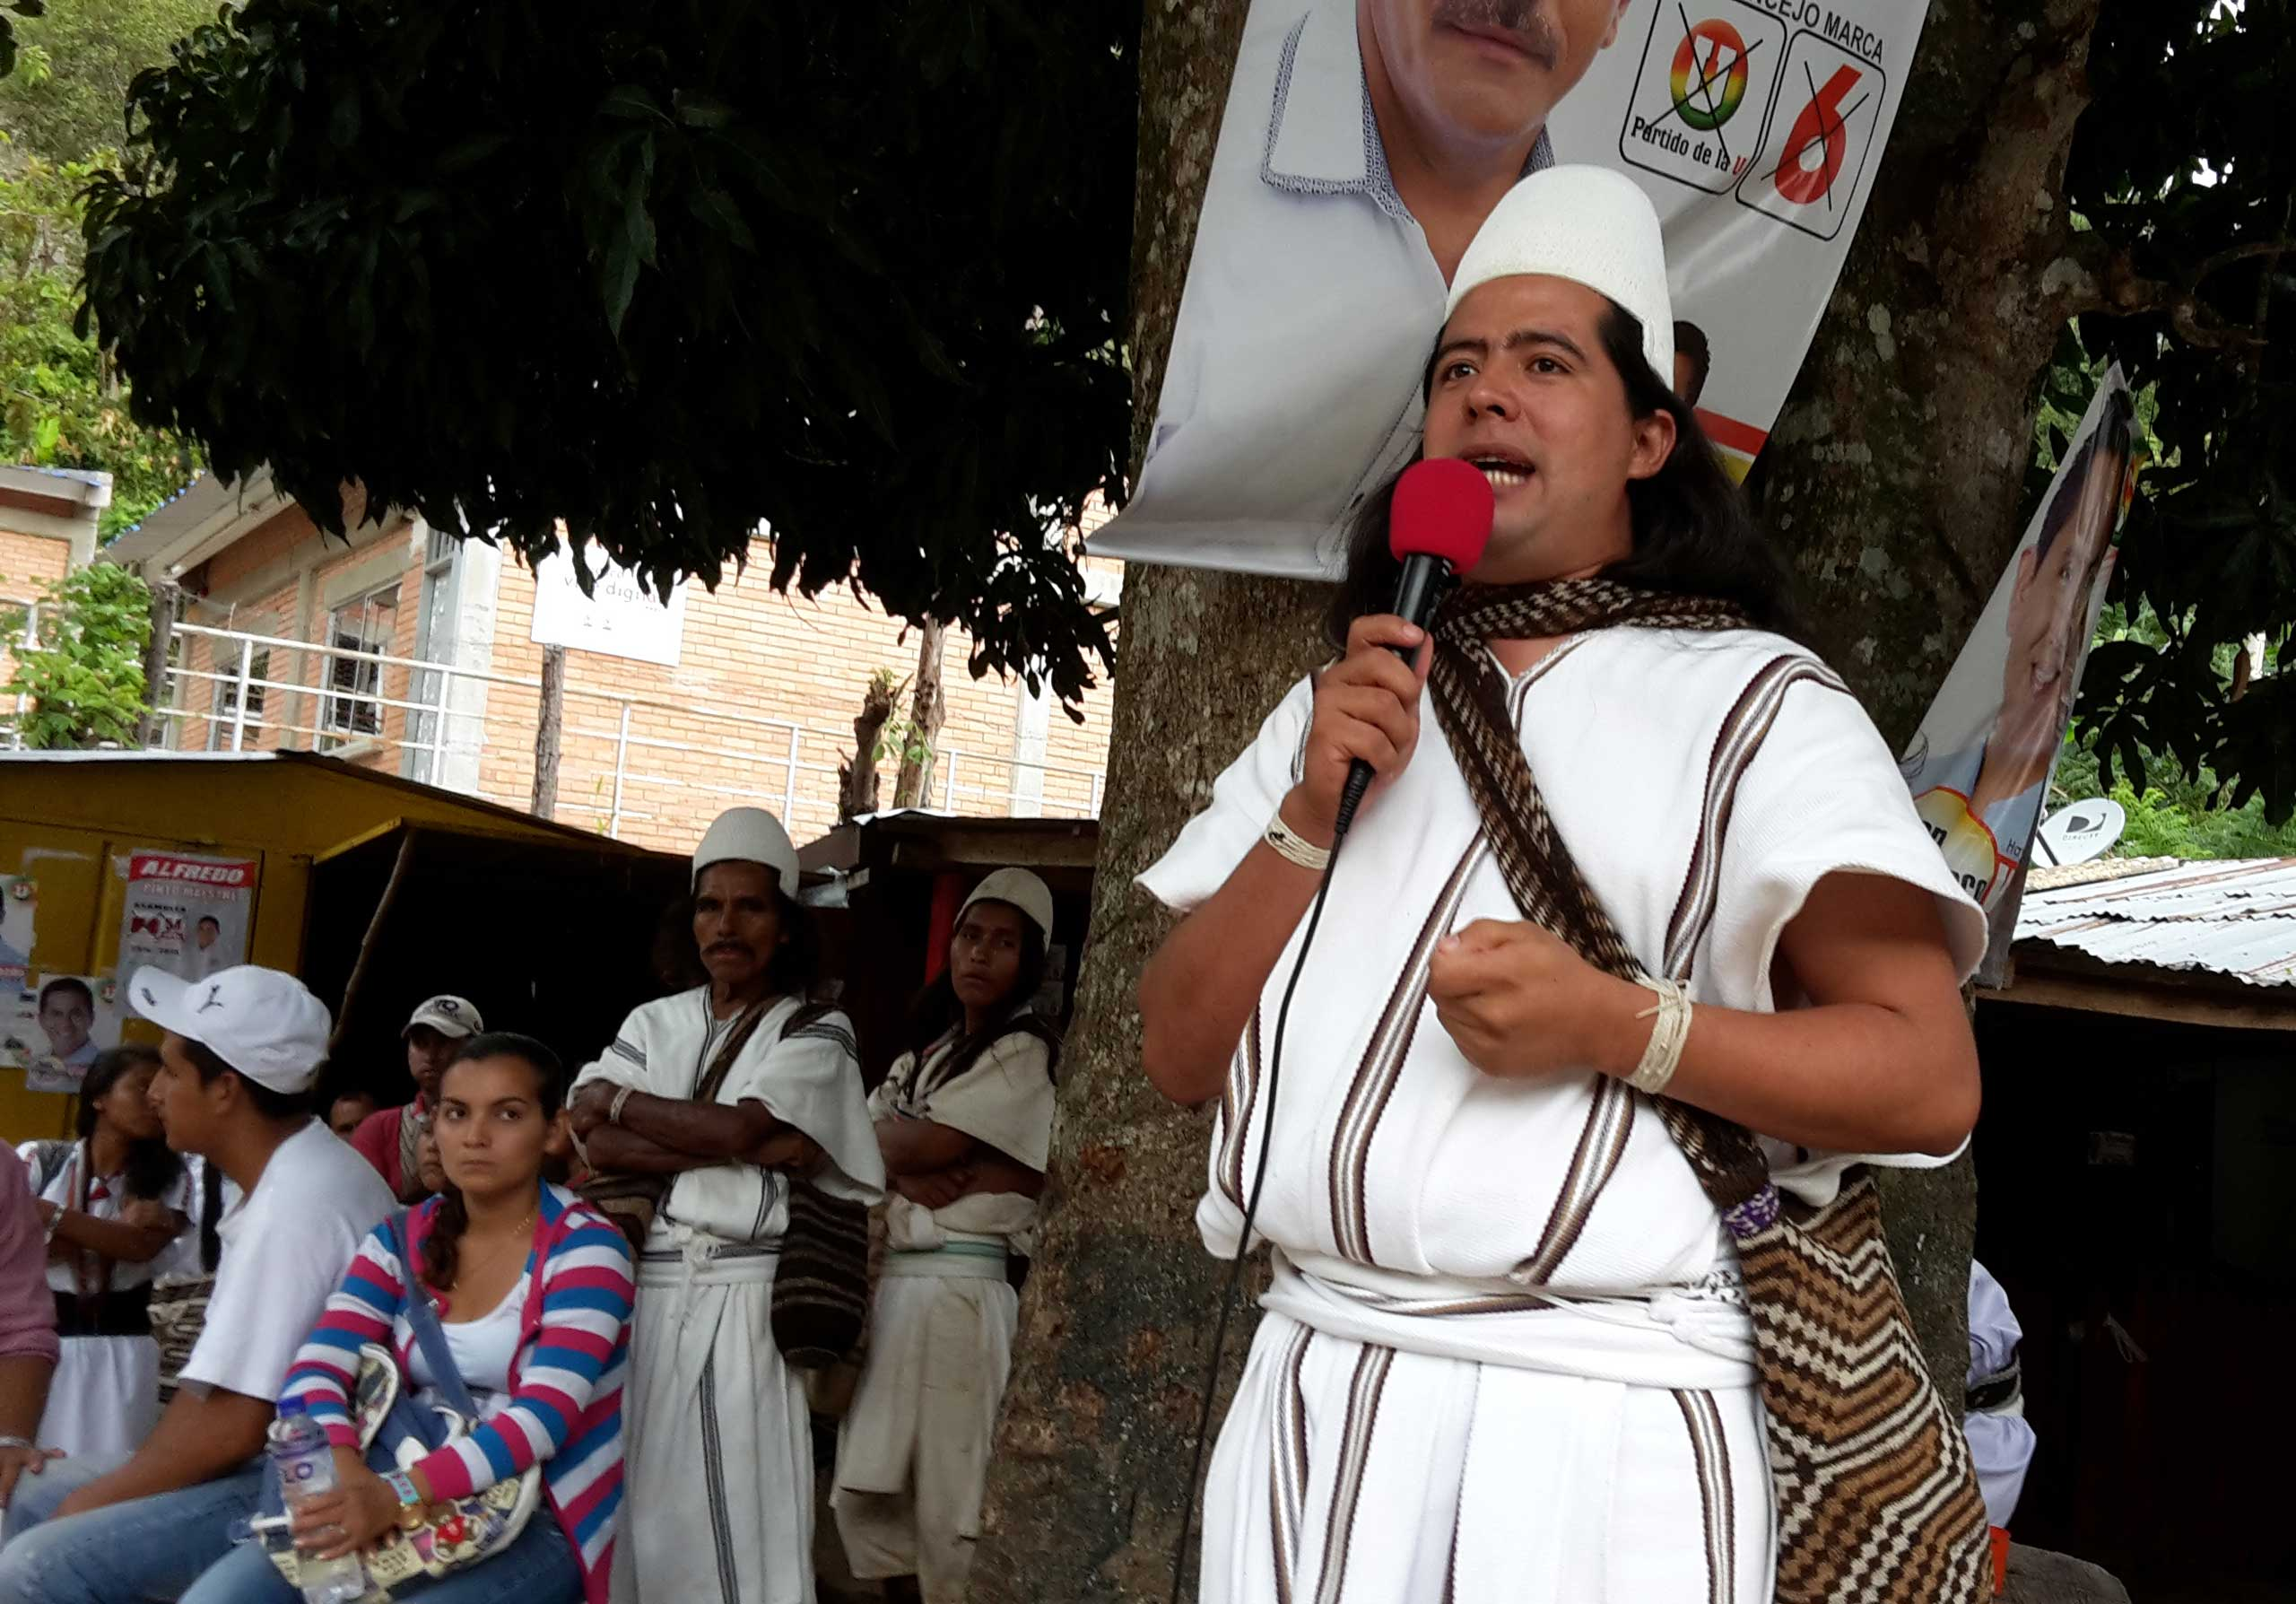 Saul Mindiola, an Arhuaco Indian who is running for mayor of the Colombian town of Pueblo Bello, gives a campaign speech in Pueblo Bello, on Sept. 20, 2015. Mindiola fears he could lose Sunday's election due to vote fraud, a major problem in hundreds of Colombian towns and cities.